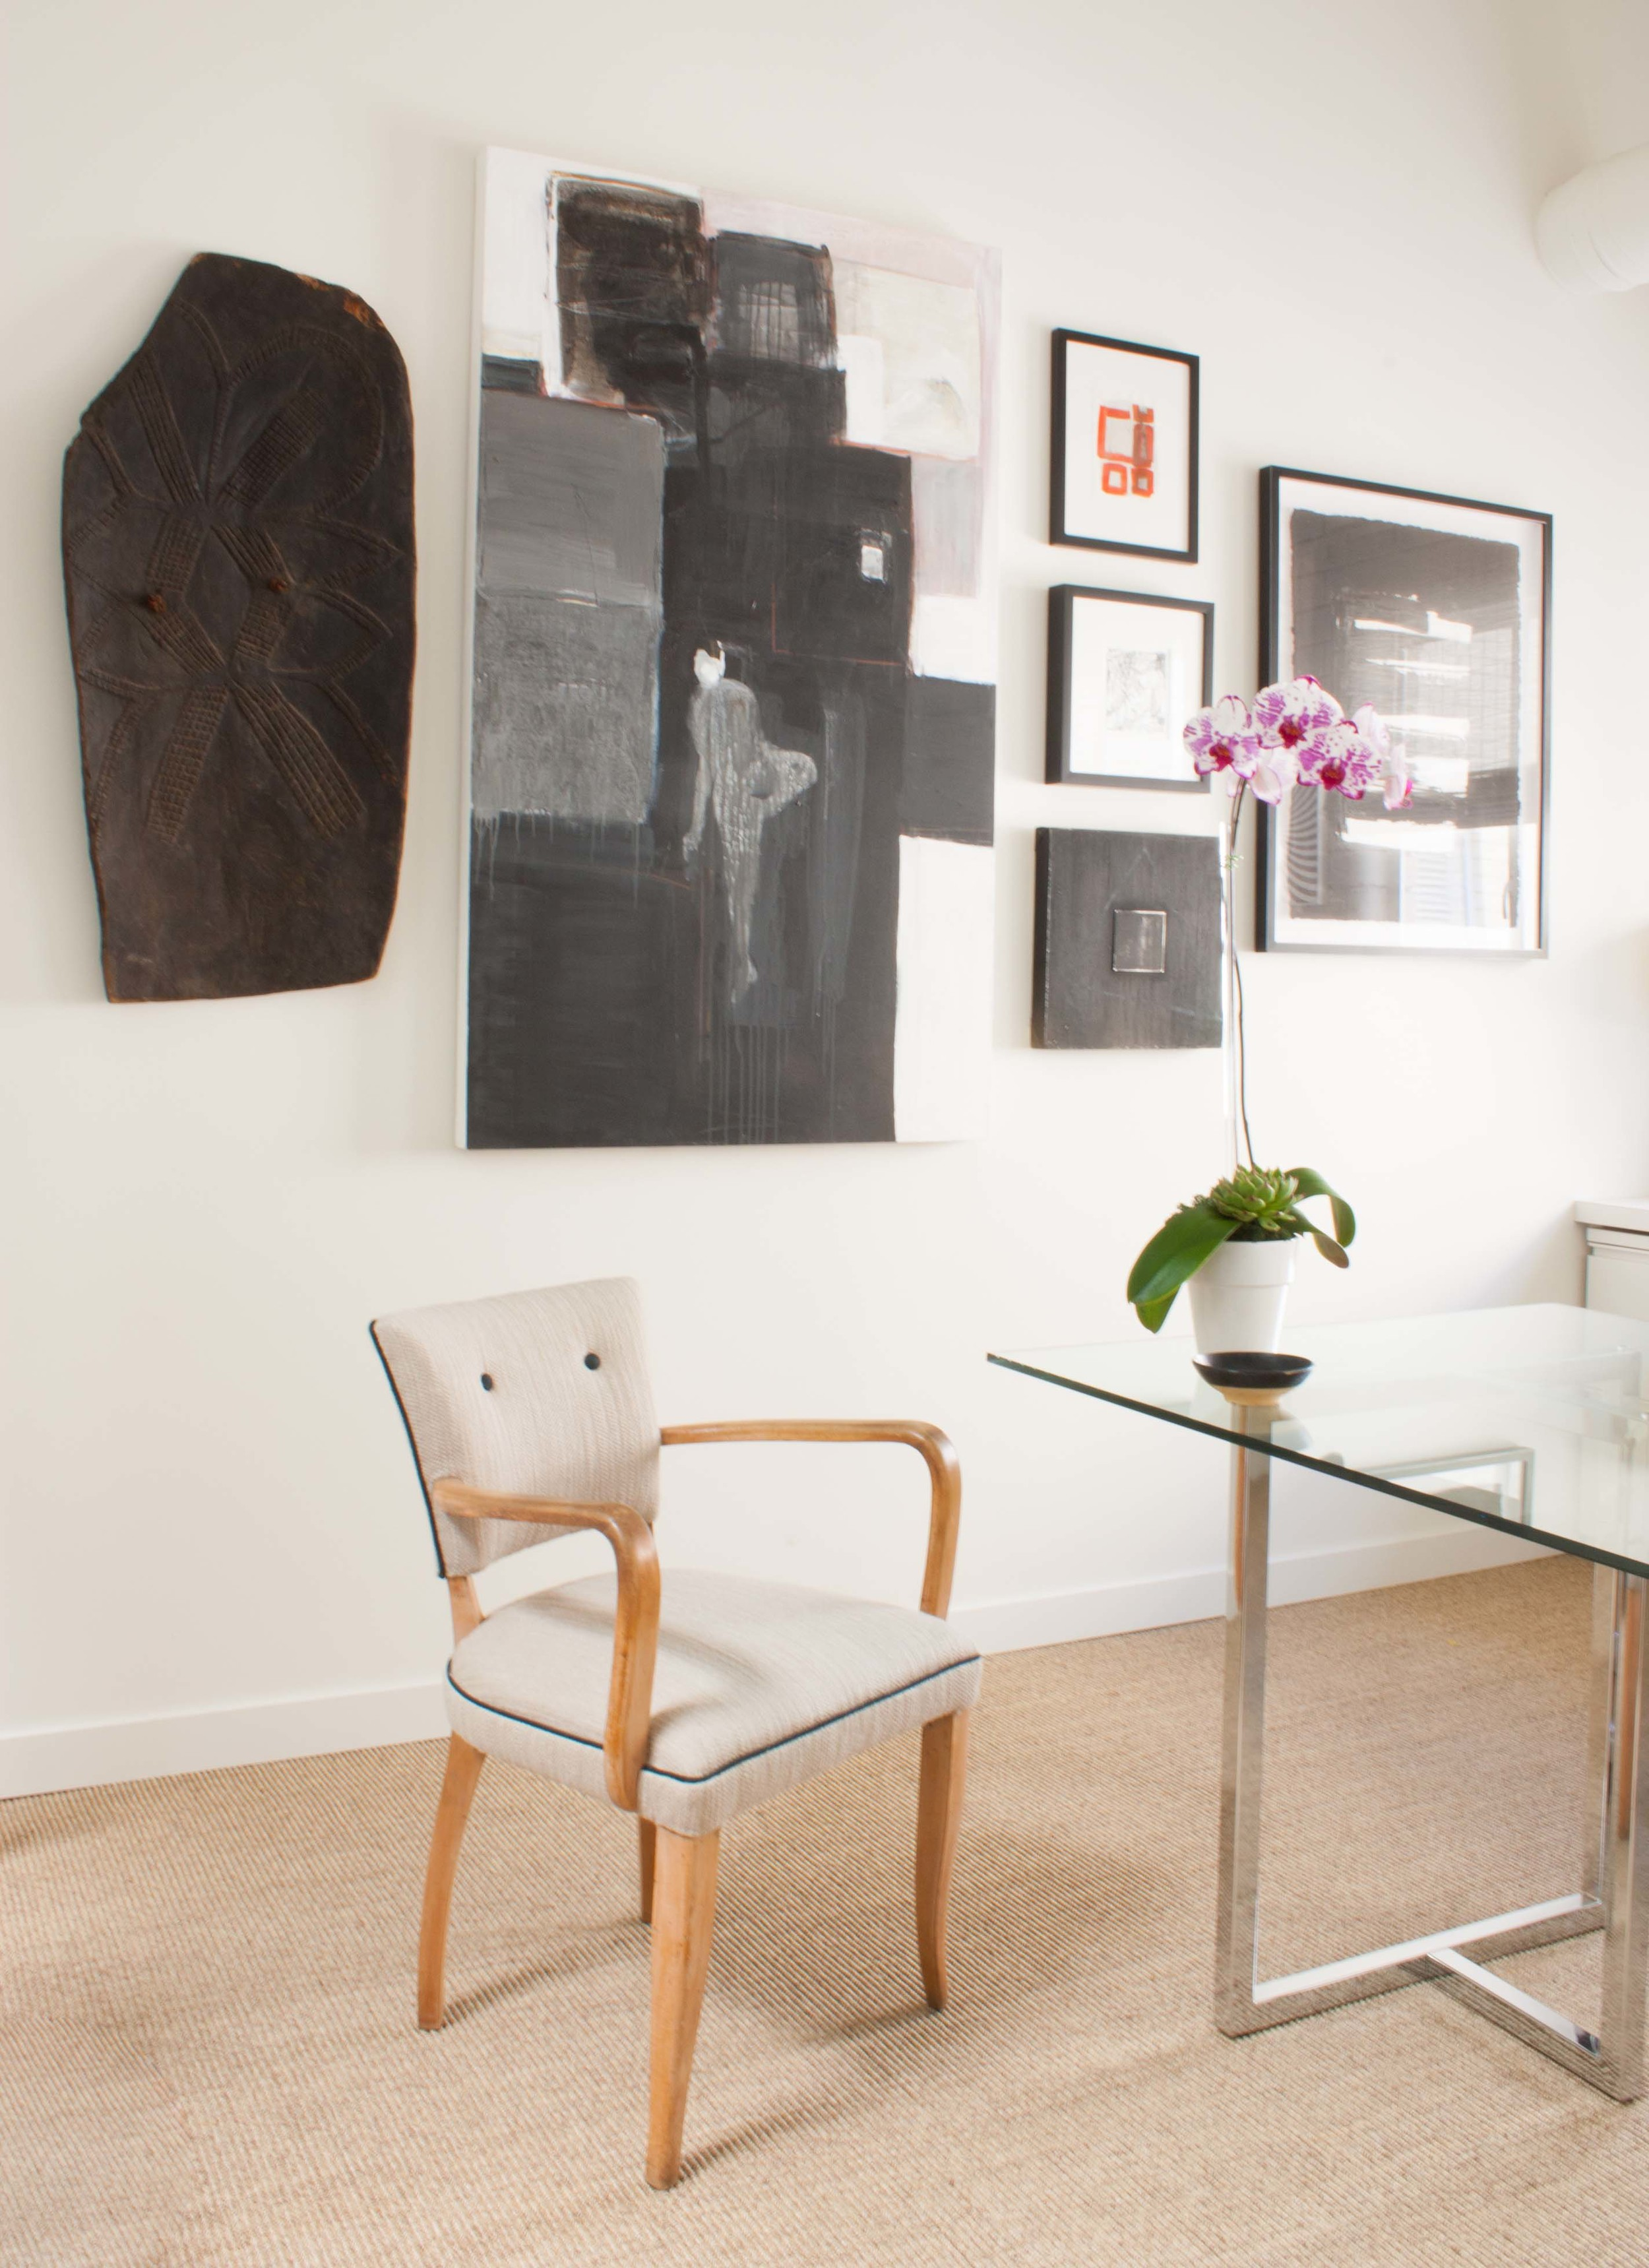 CAFE GRATITUDE OFFICE / Wendy Haworth Design /  www.wendyhaworthdesign.com